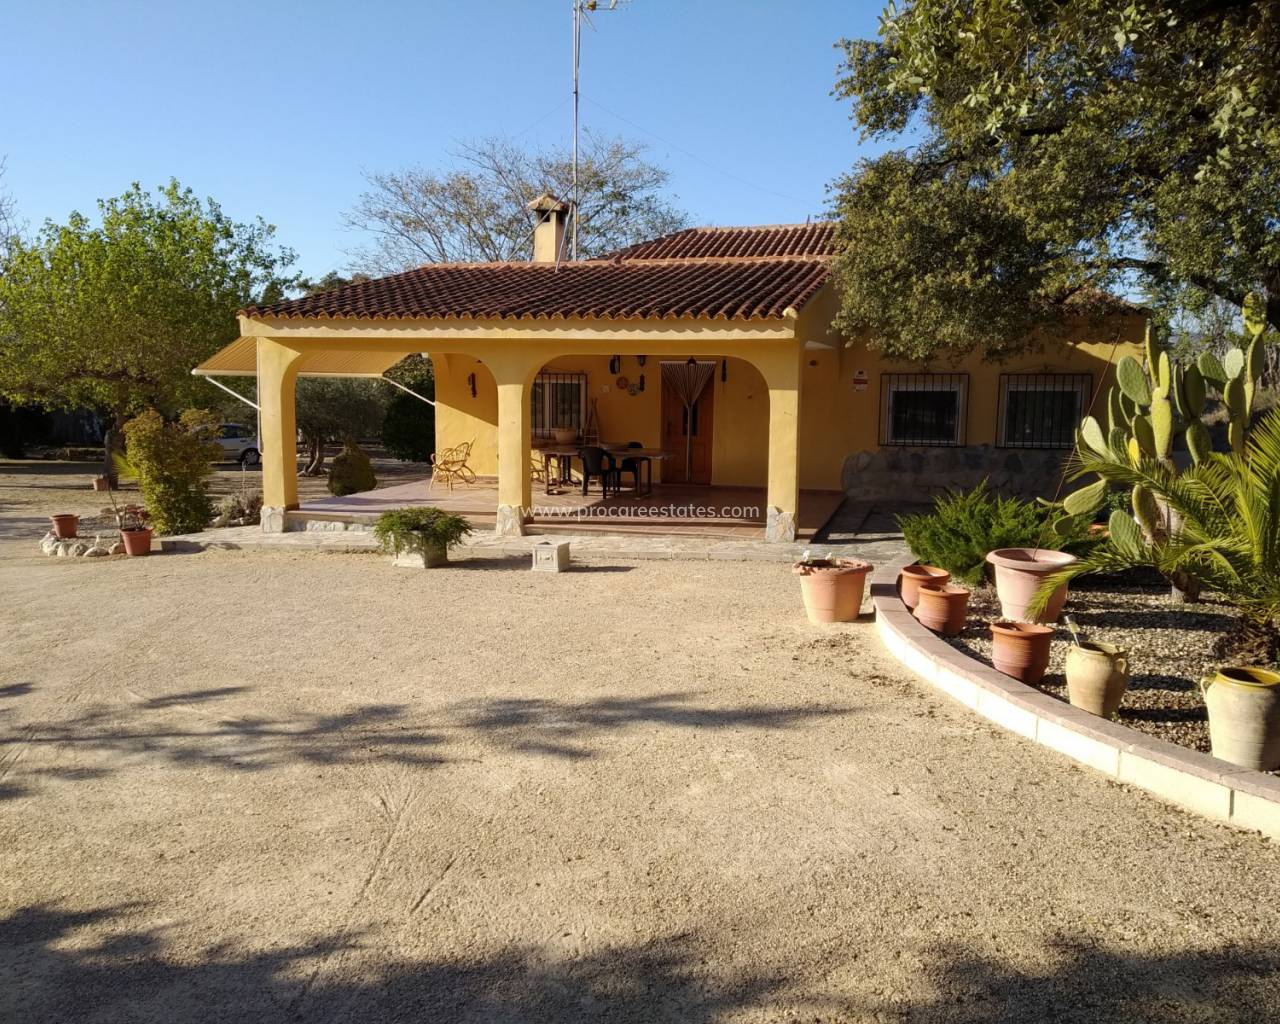 Country Property - Verkoop - Ontinyent - Ontinyent